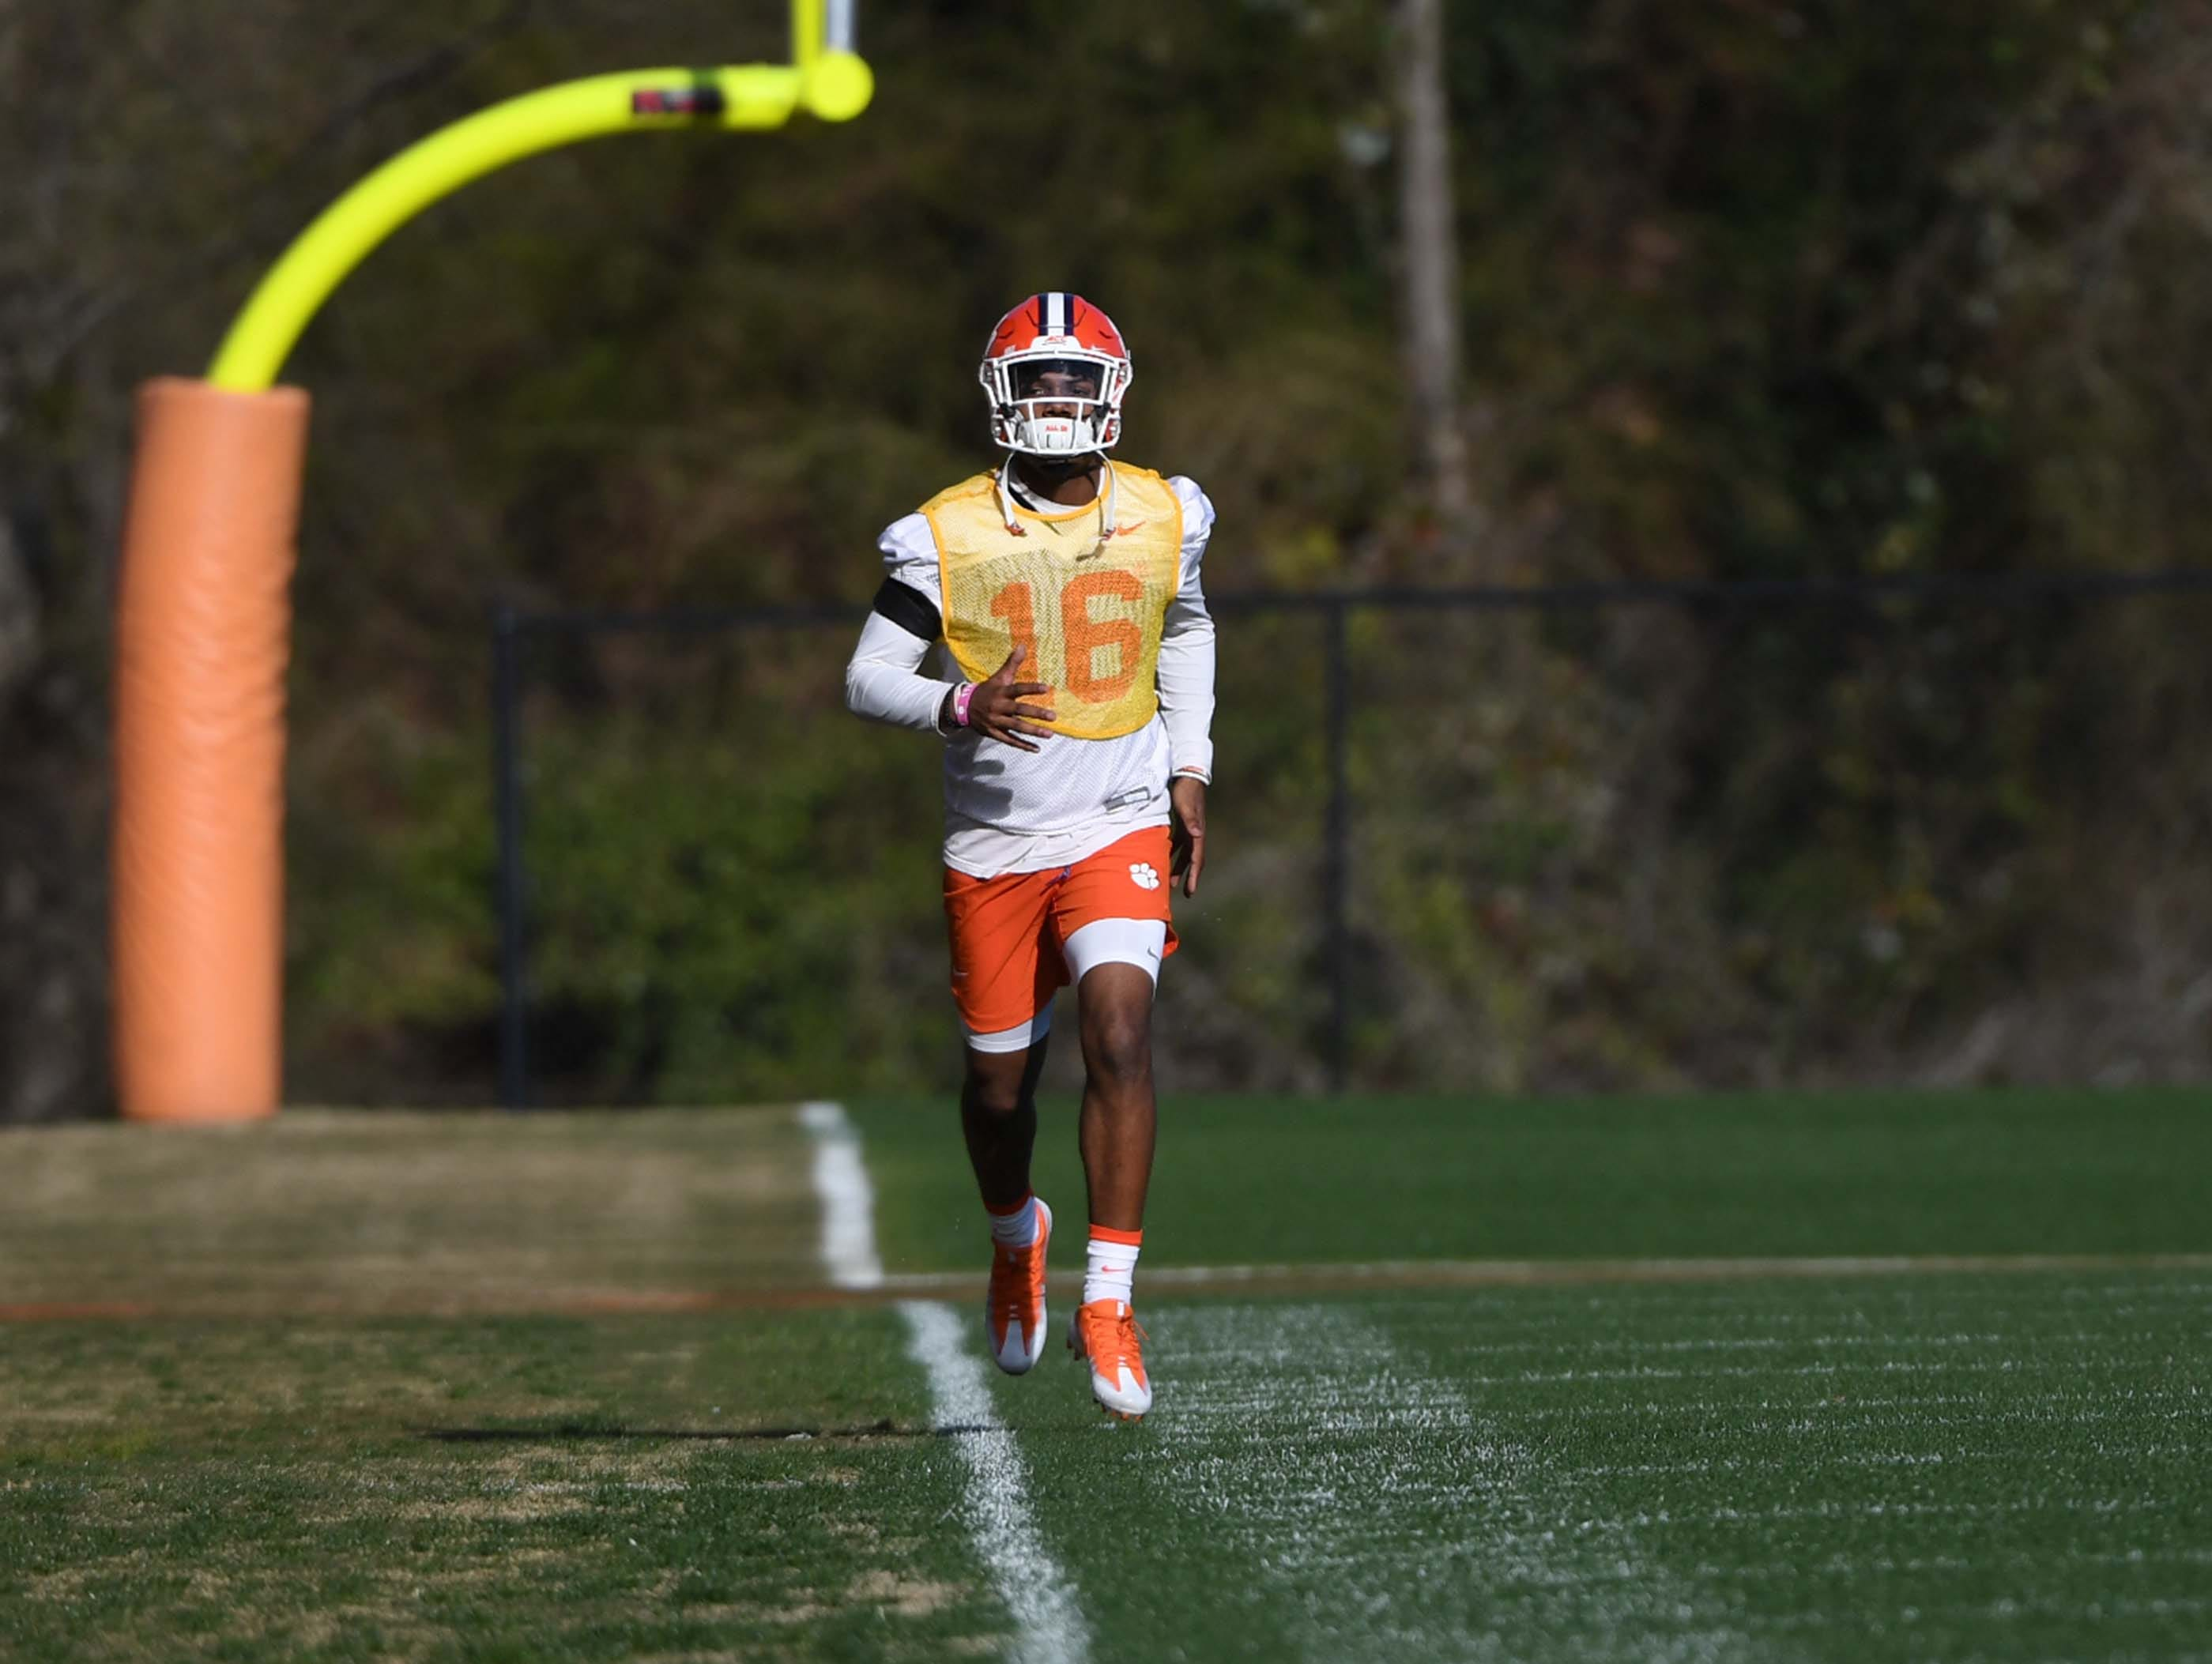 Clemson defensive back Ray Thornton III (16) runs during practice at the Poe Indoor Facility in Clemson Monday.